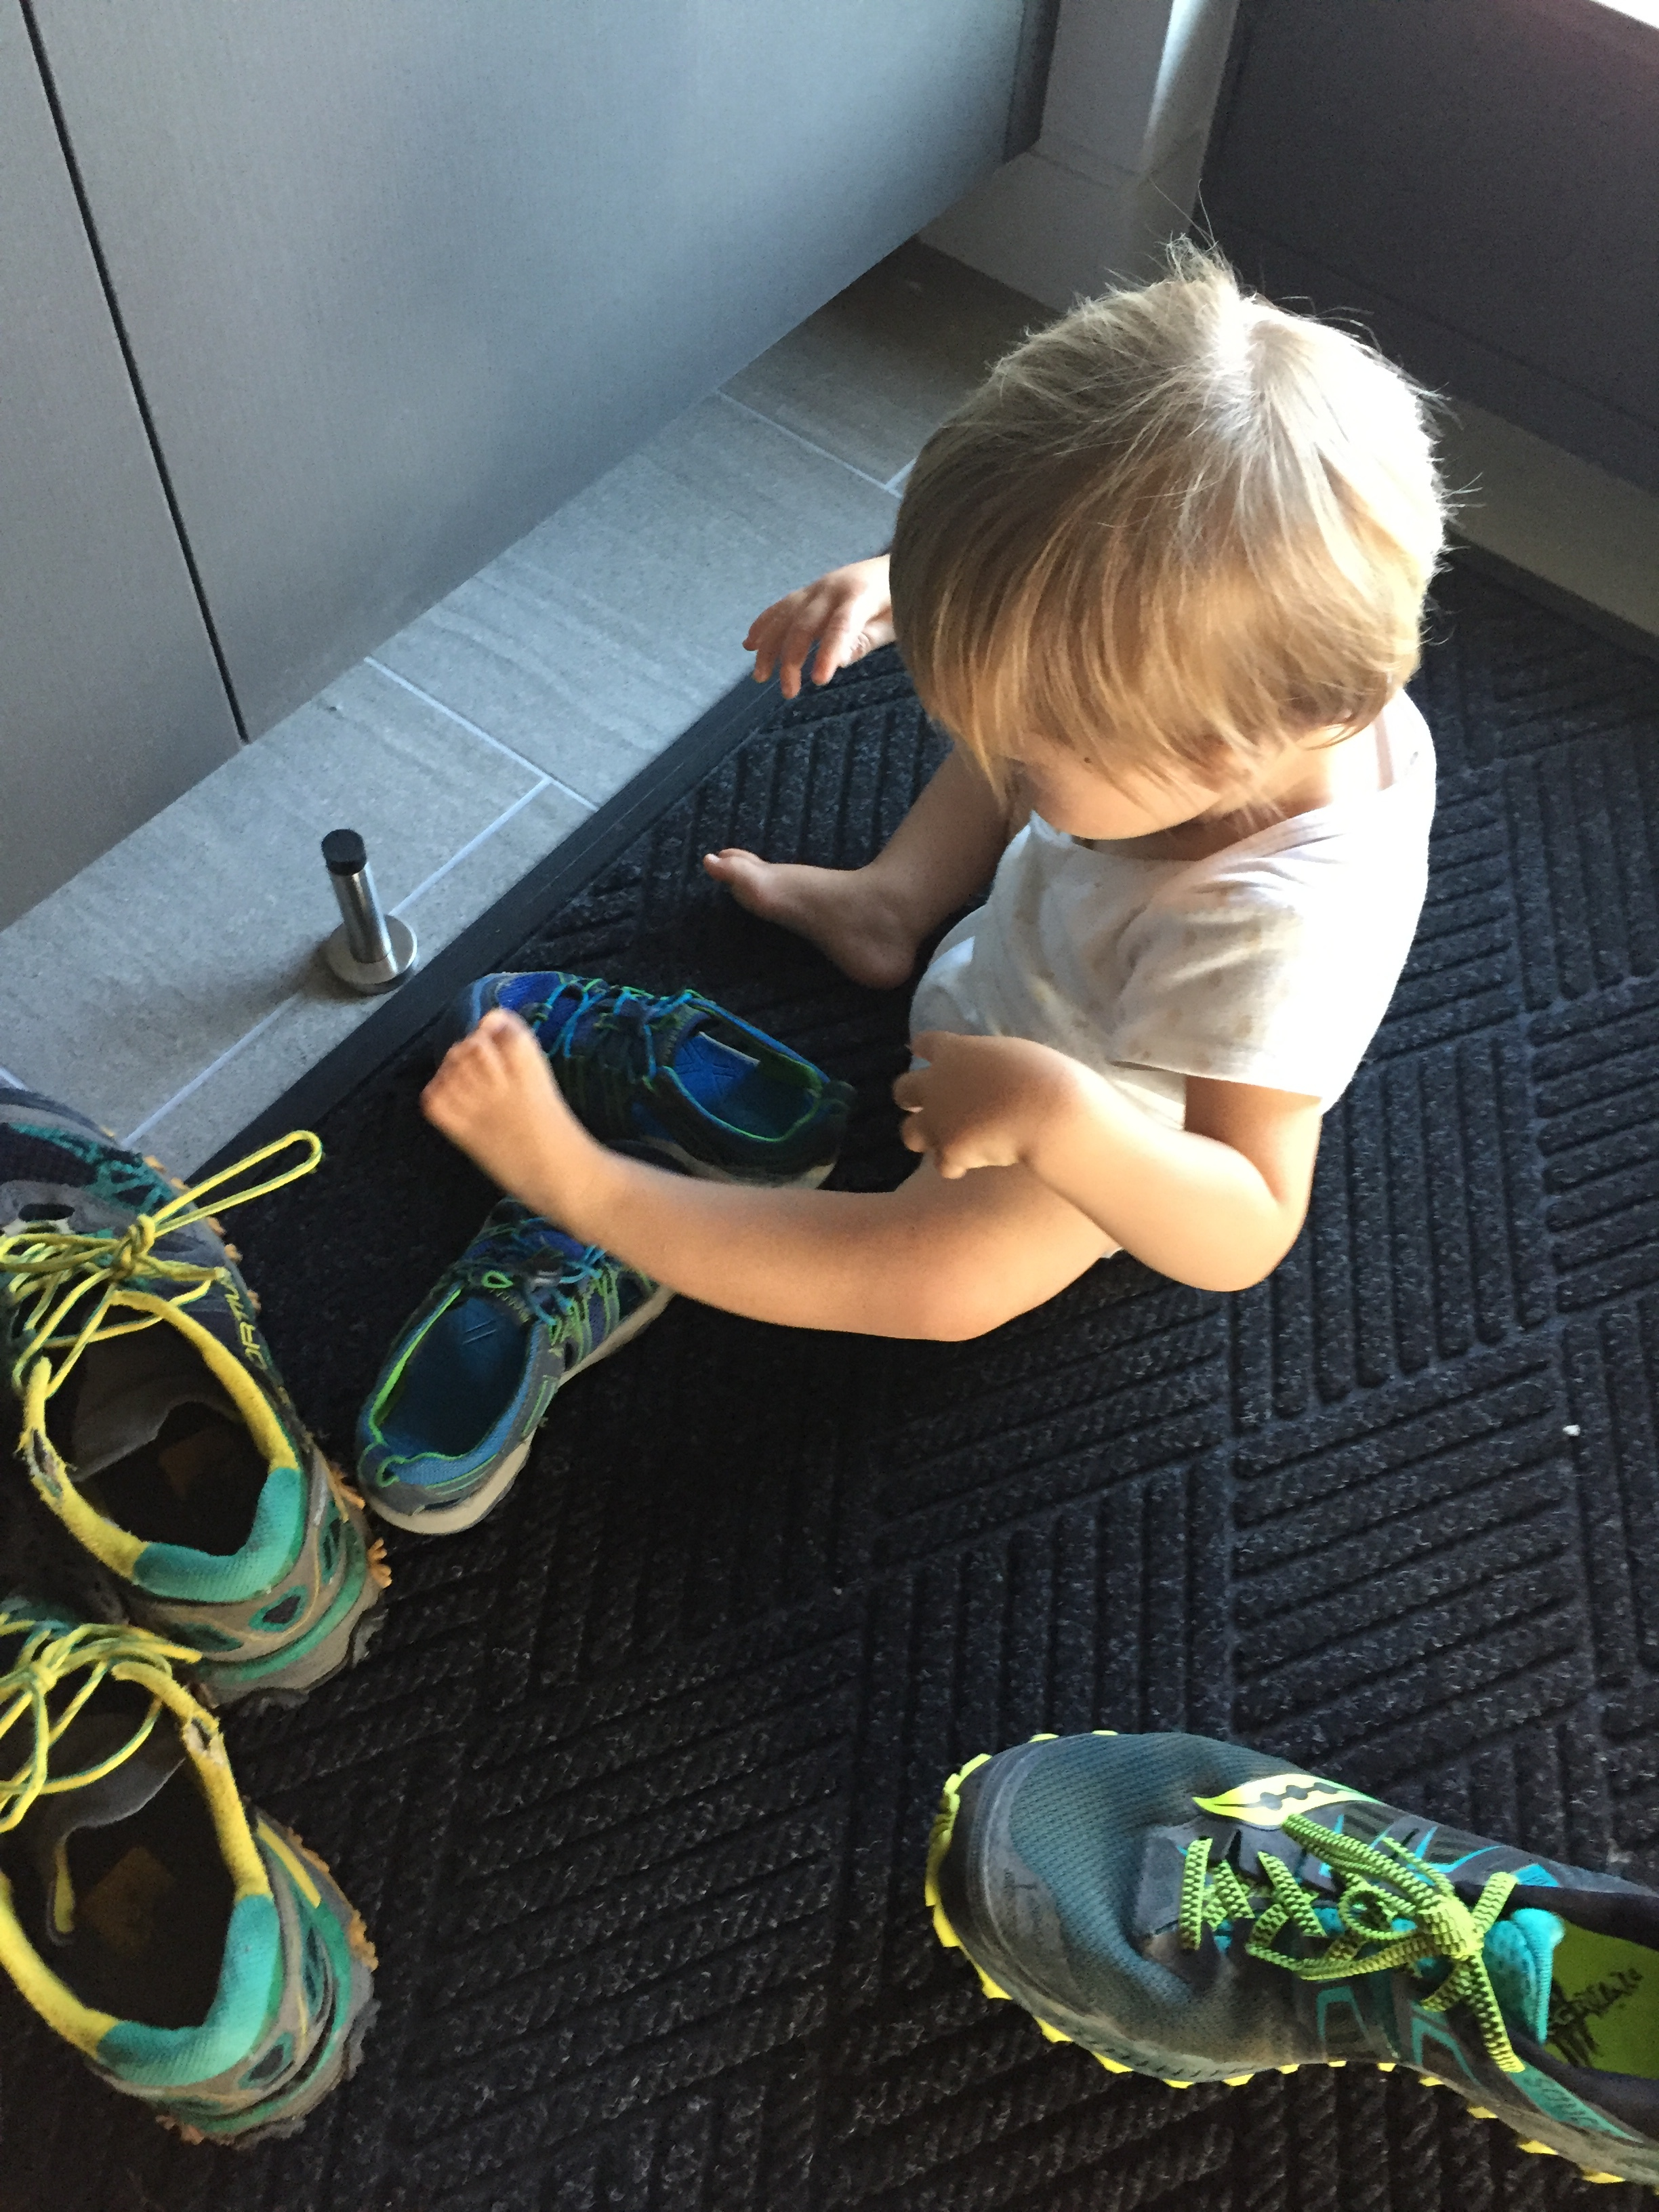 Trying on brother's shoes.